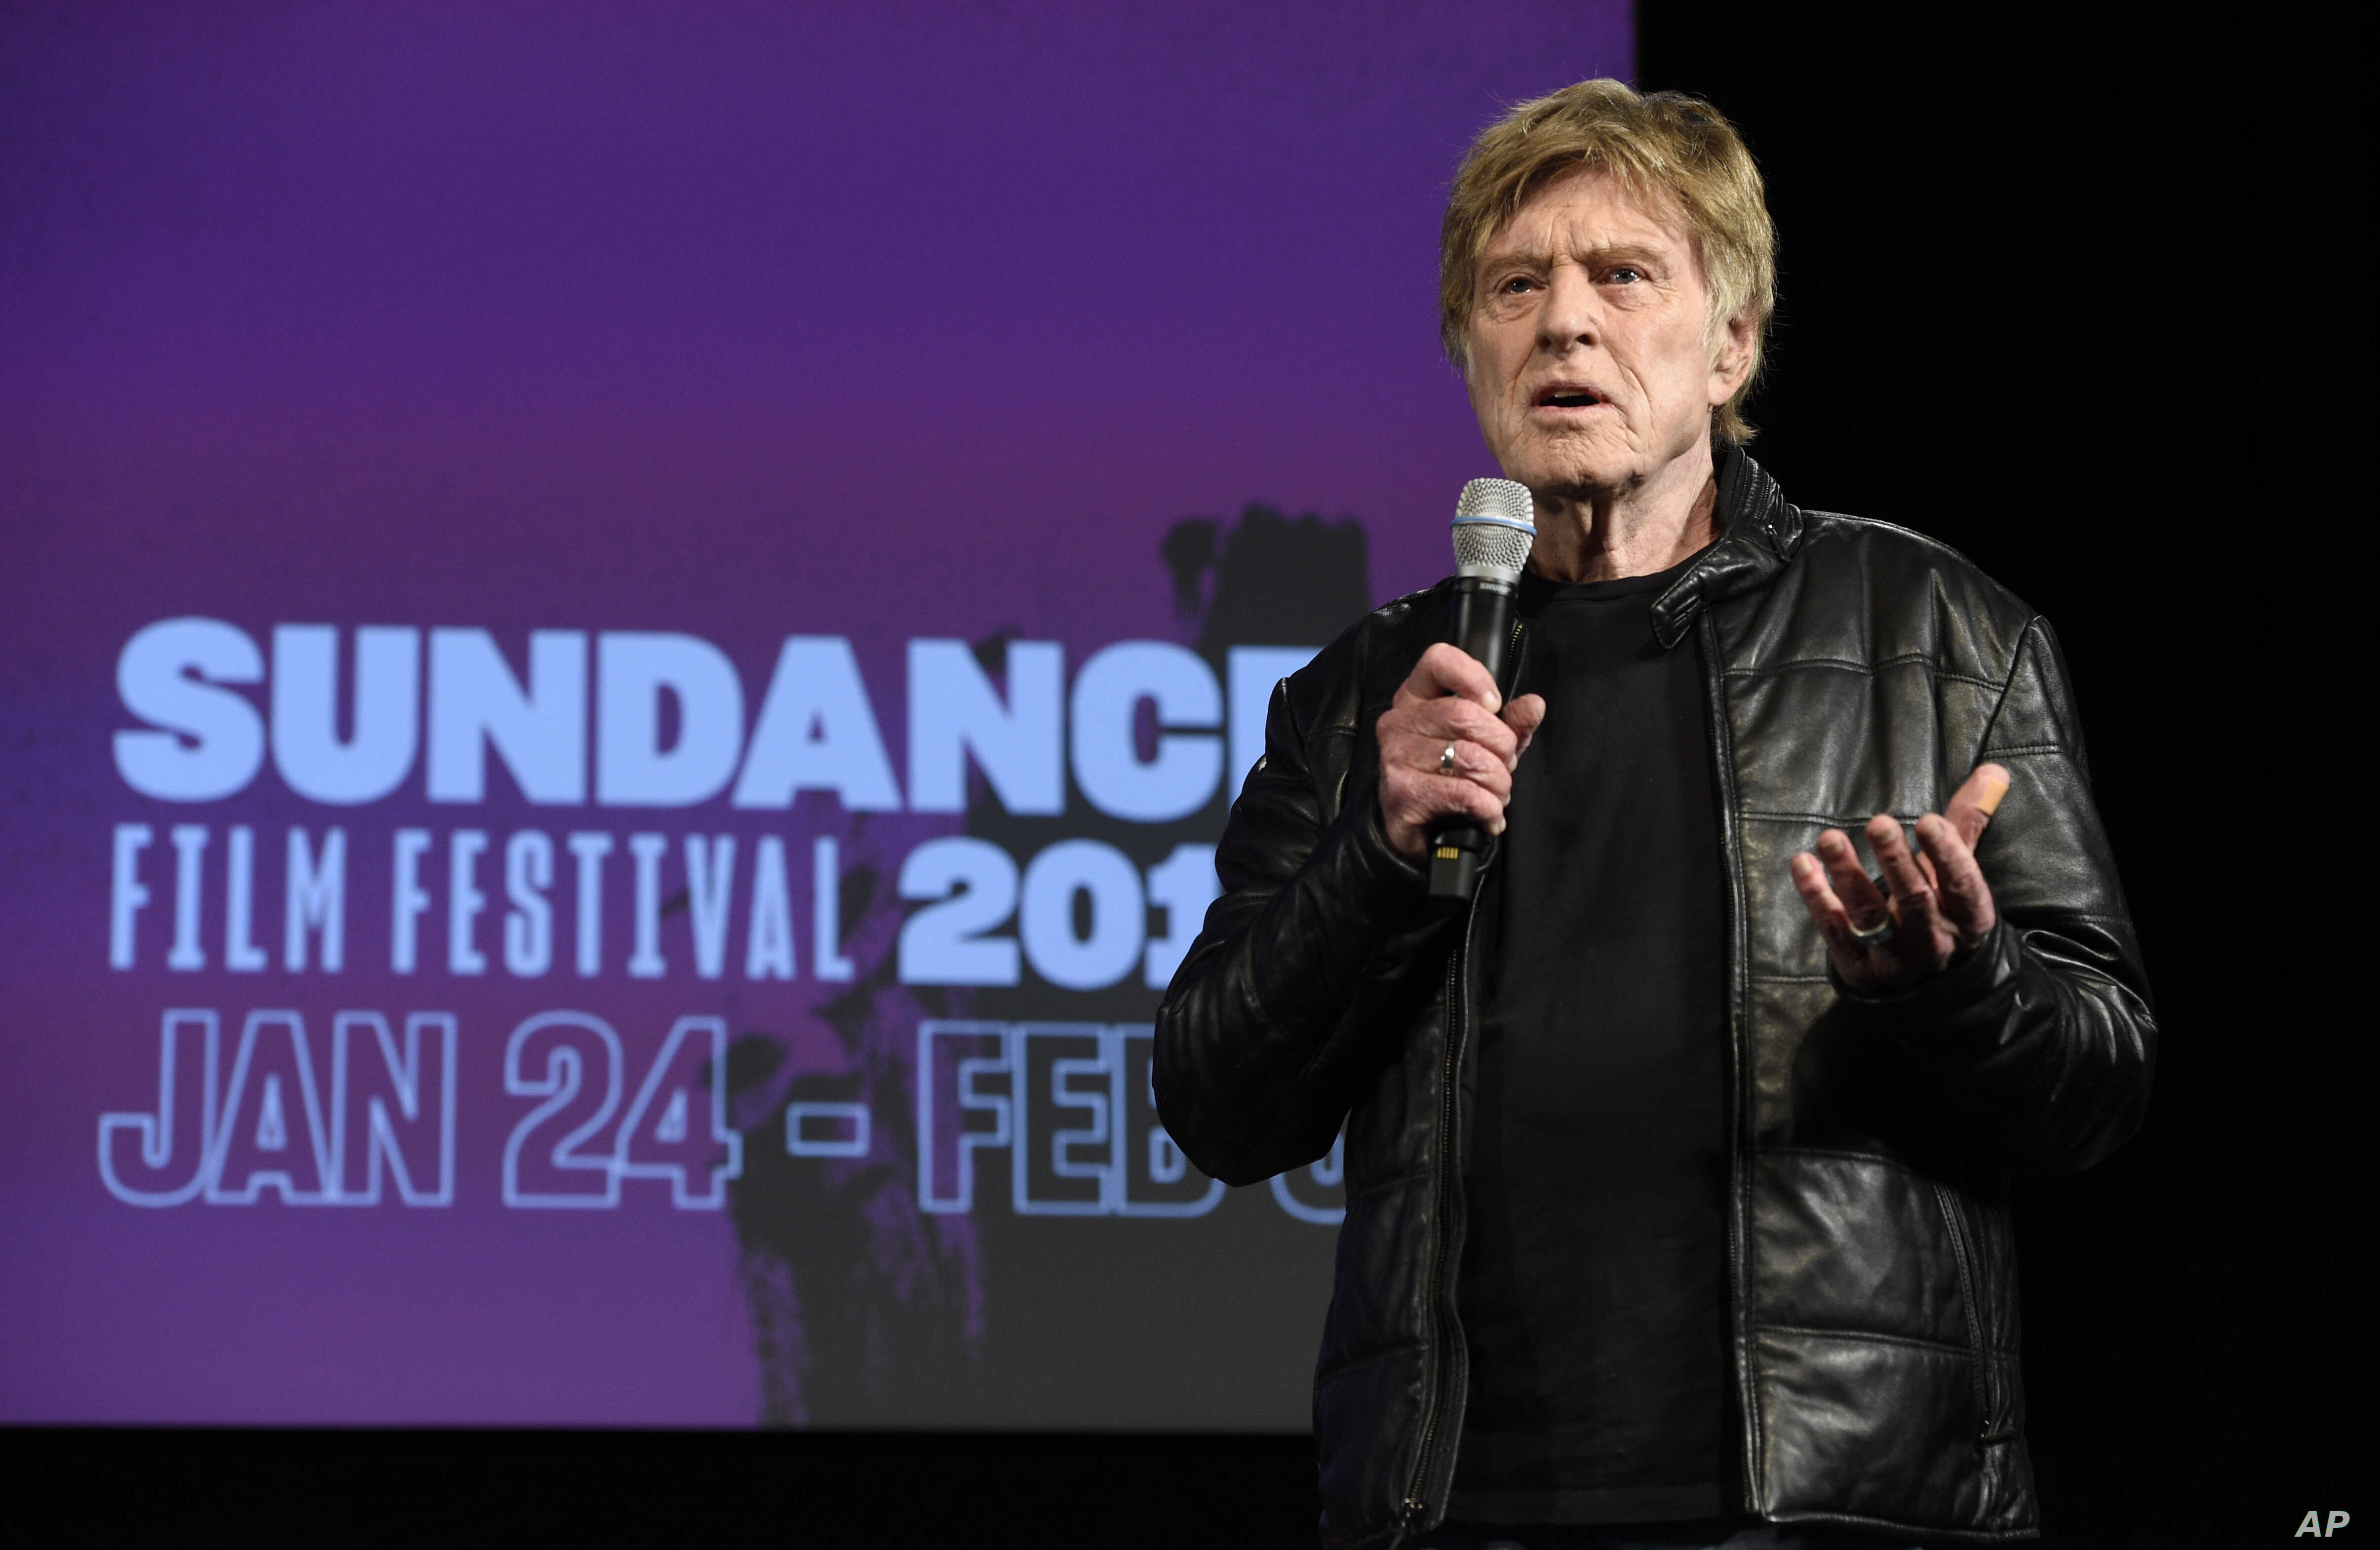 Robert Redford, president and founder of the Sundance Institute, addresses reporters during the opening day press conference at the 2019 Sundance Film Festival in Park City, Utah, Jan. 24, 2019.